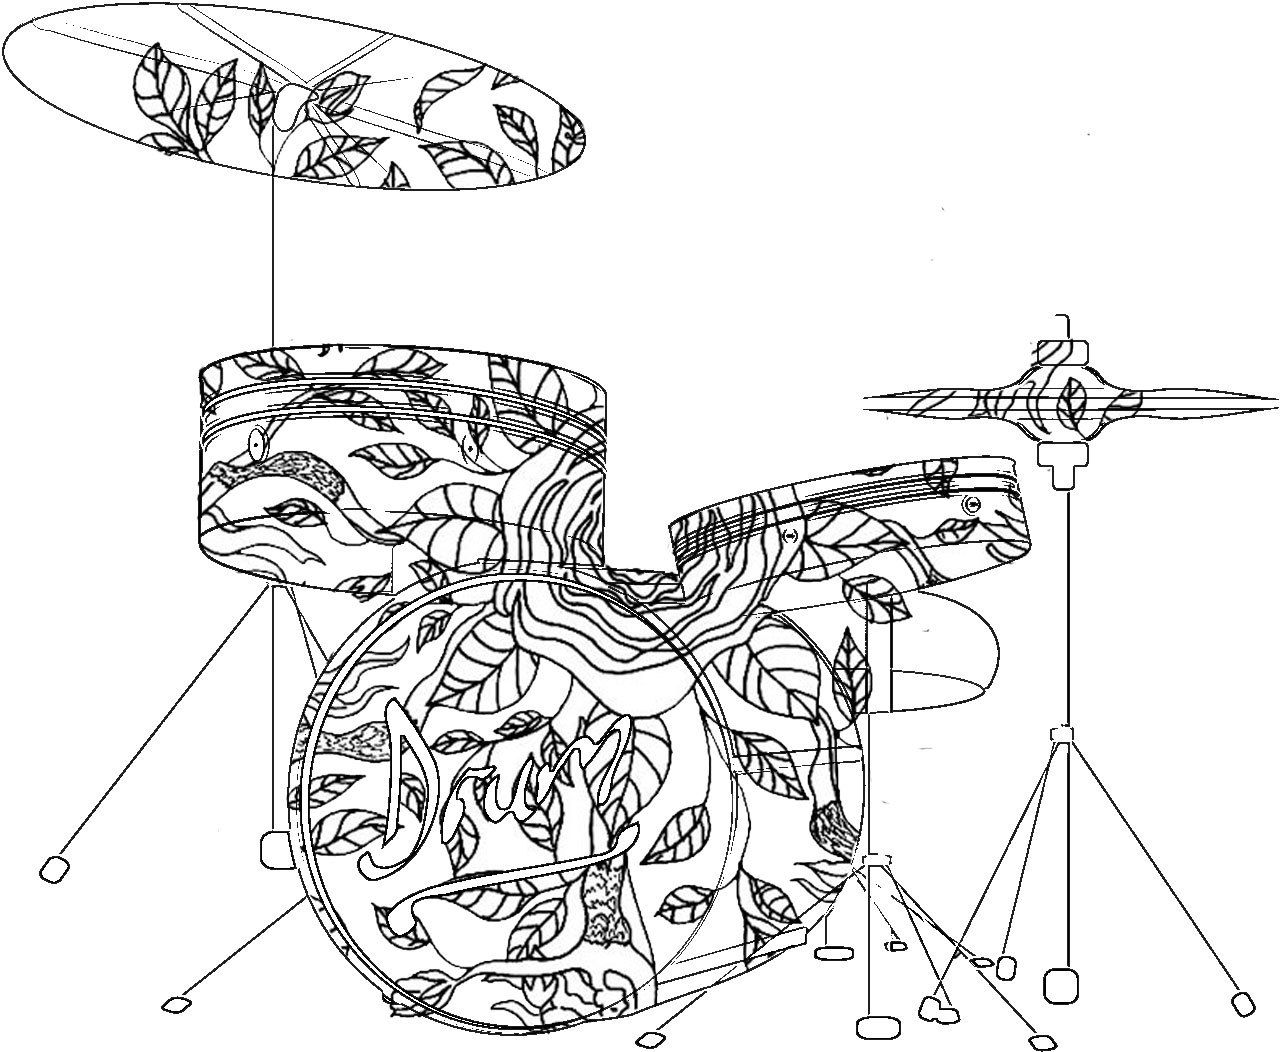 Pin By Fosterginger On Coloring Book Pianos Musical Instruments Guitars Mandalas